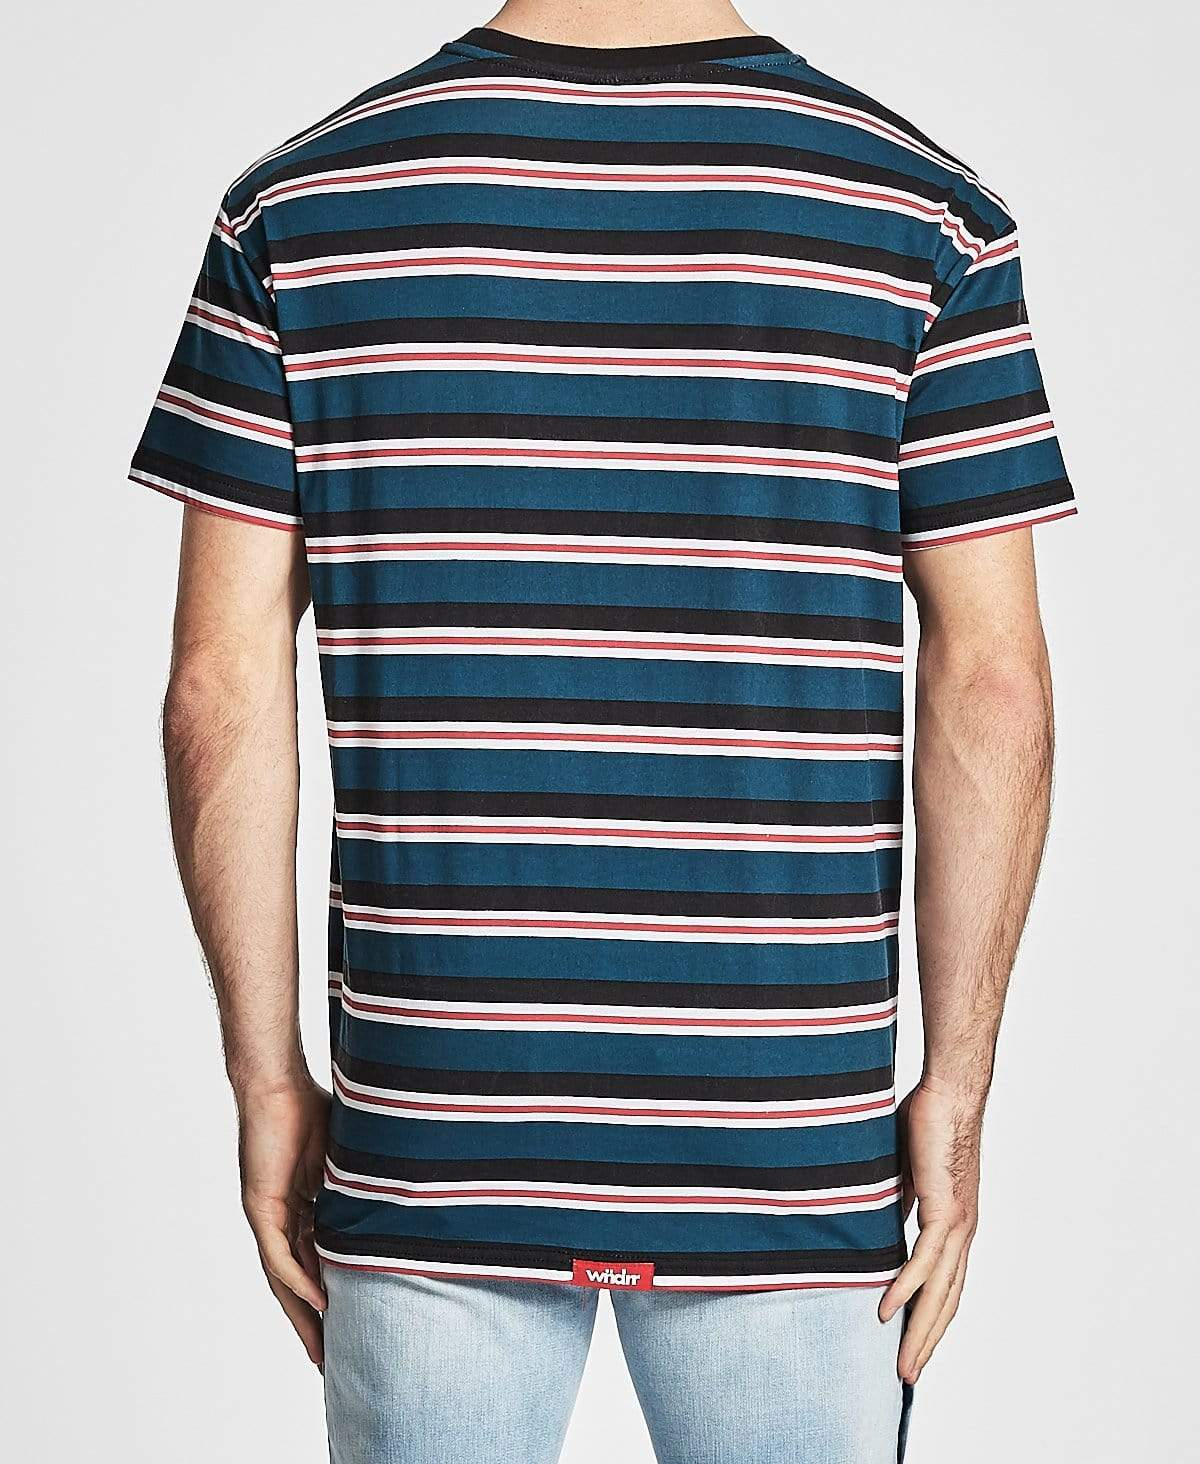 WNDRR Recess Stripe Custom Fit T-Shirt Multi Colour